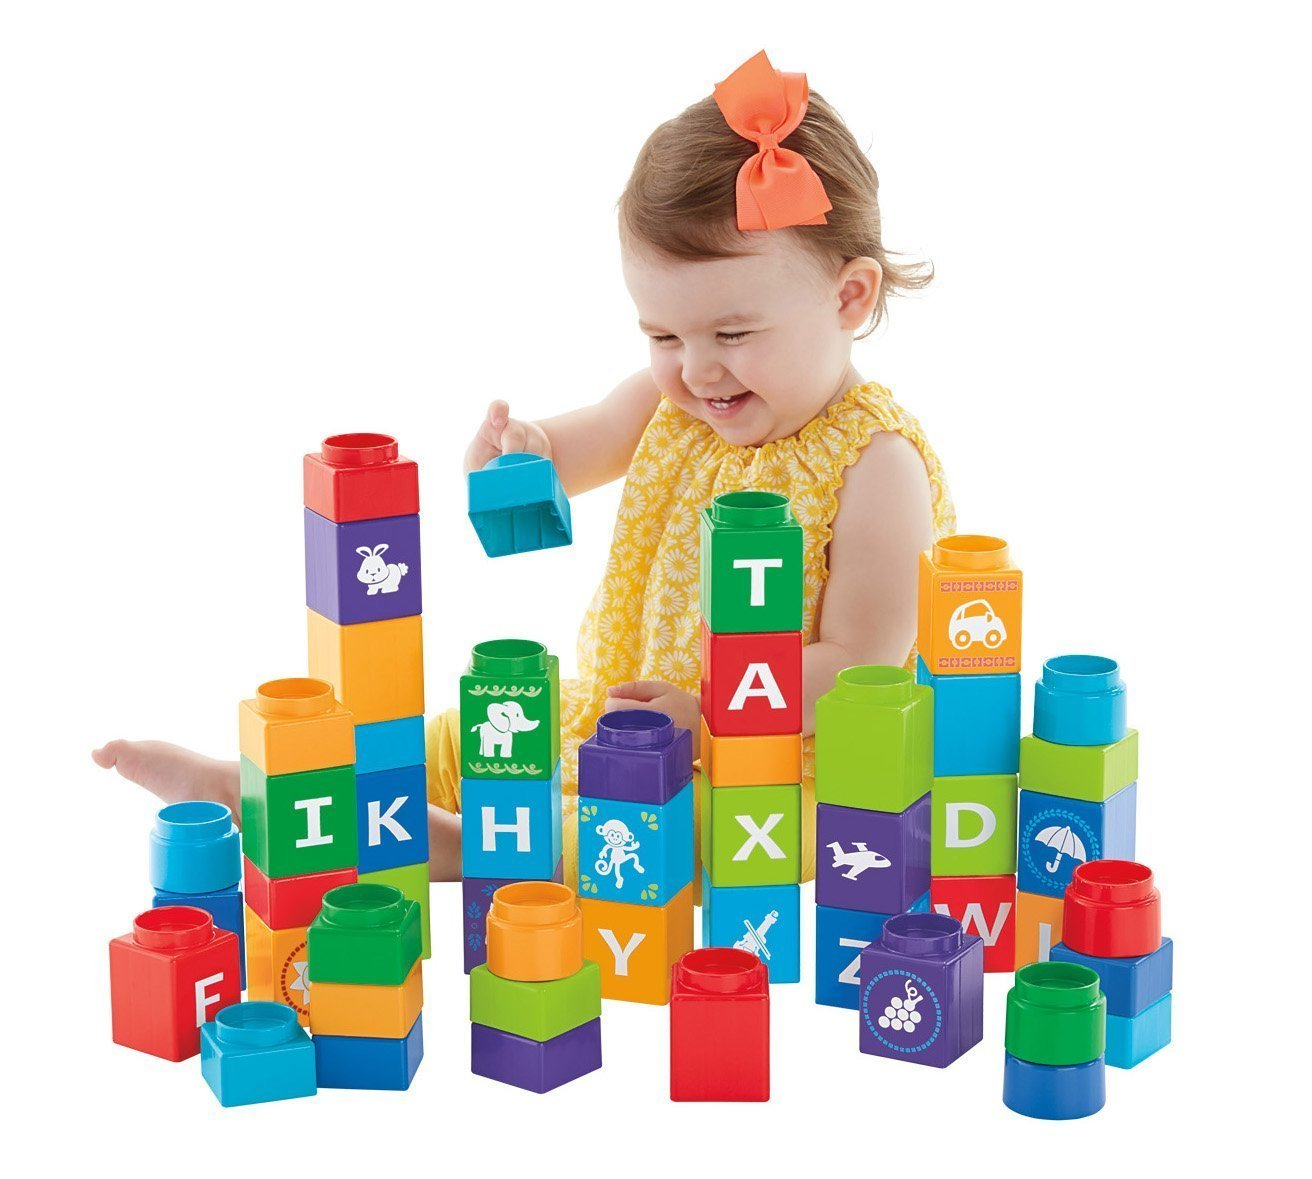 Person, Learning Toys Buy the Best